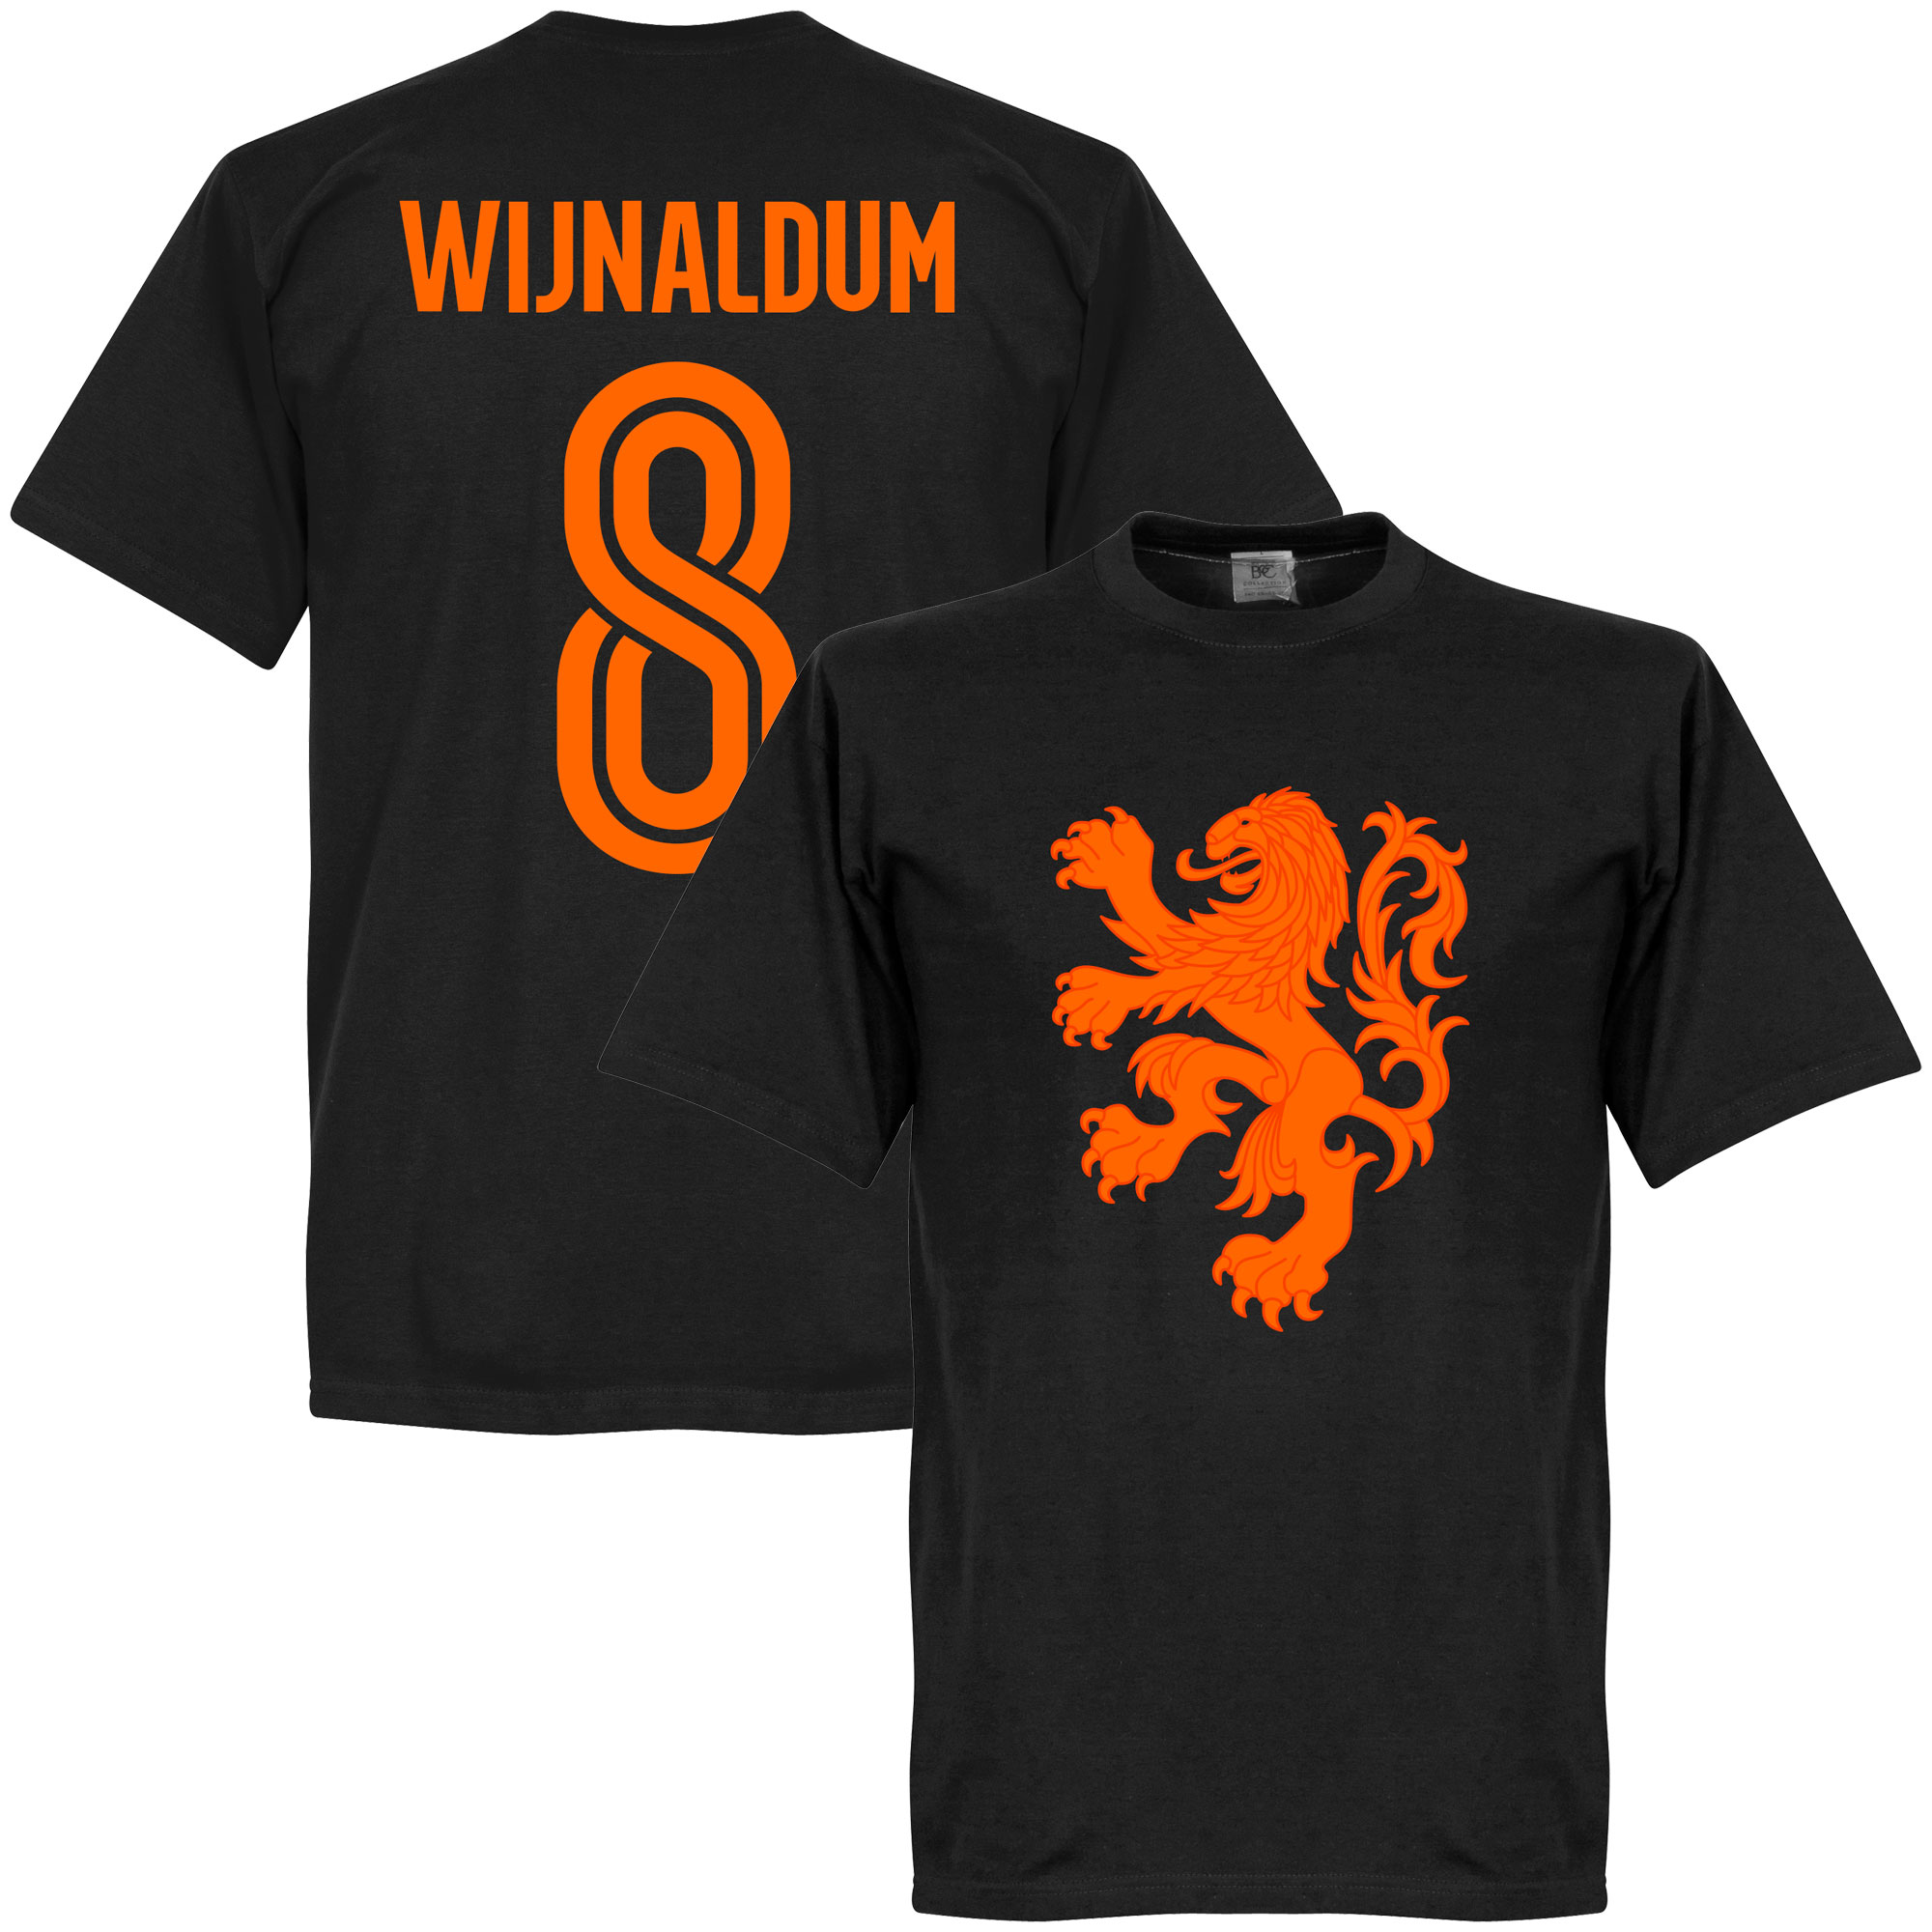 Holland Wijnaldum Lion Tee - Black - XXXL